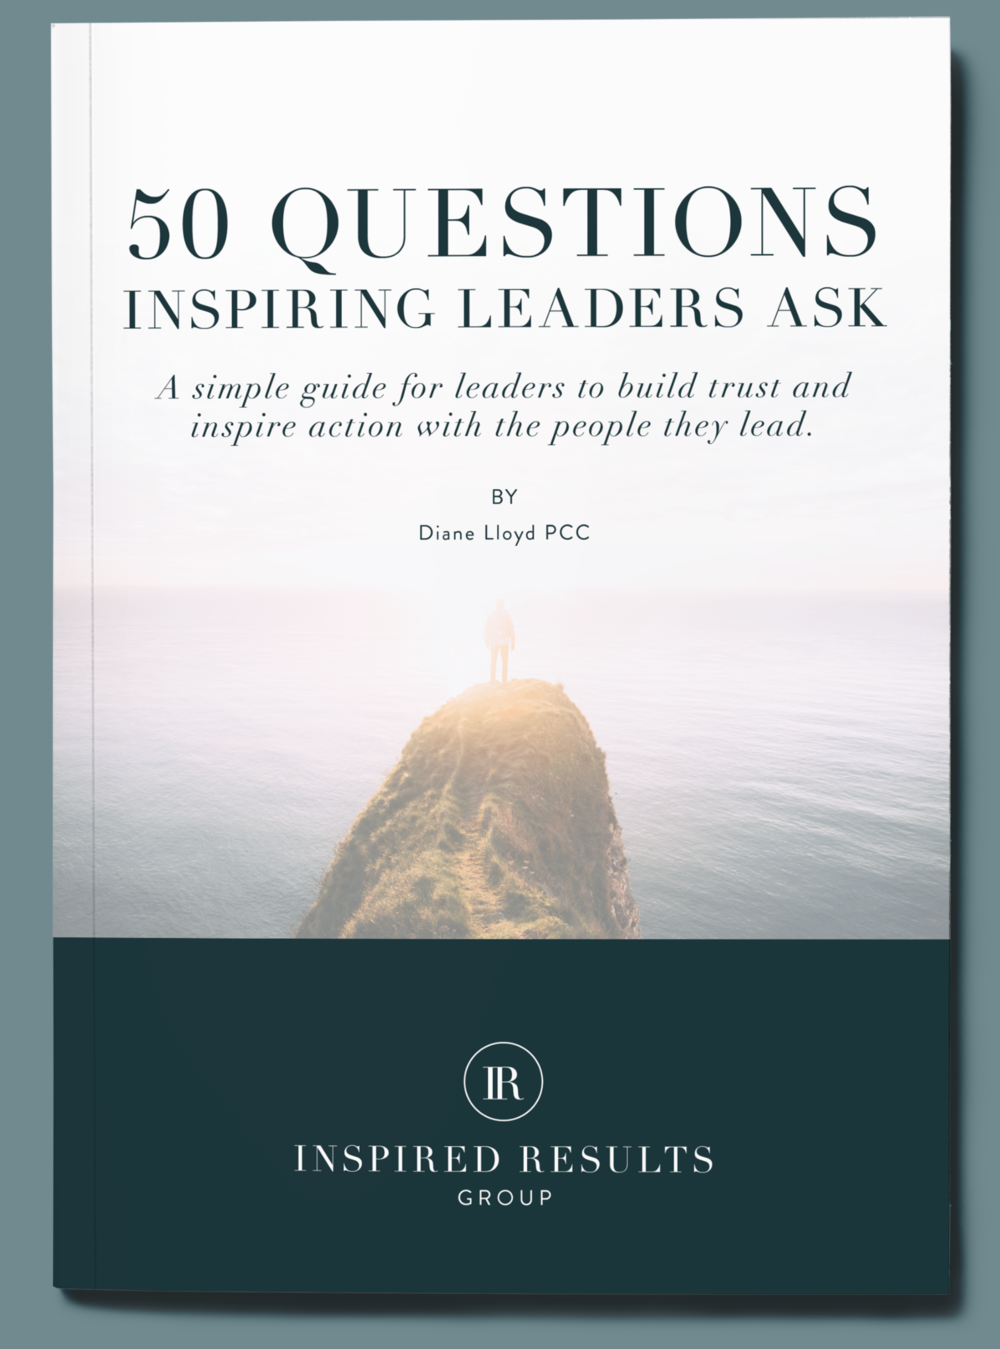 50 Questions Inspiring Leaders Ask